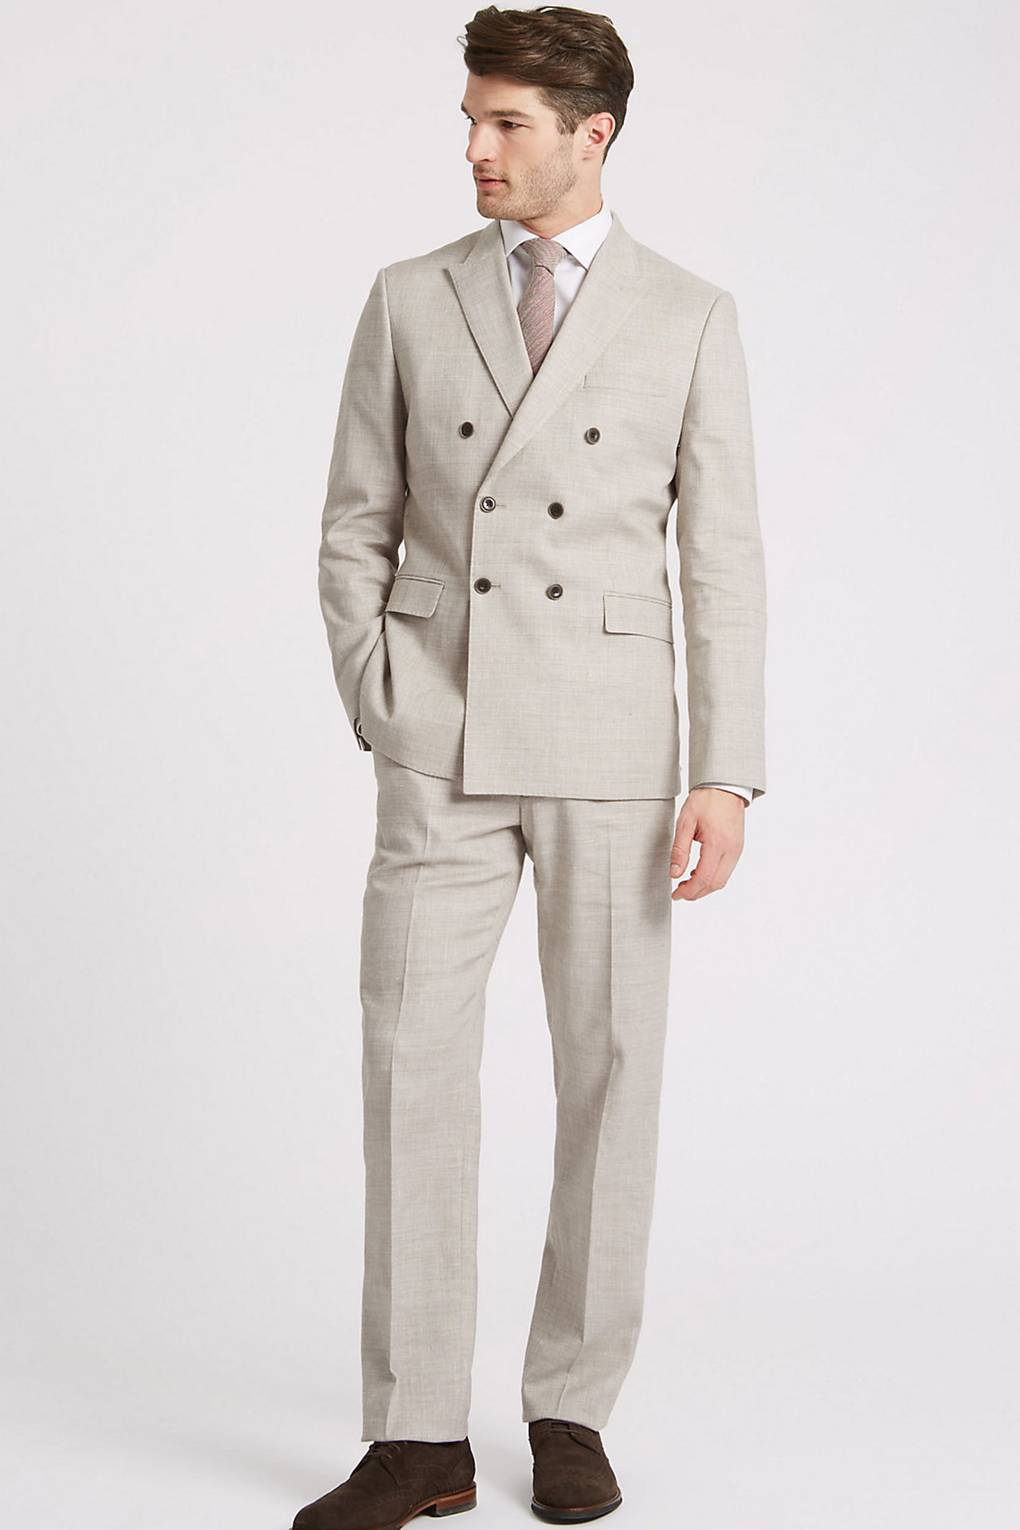 cc3a2e8b4d7 Best men s summer suits